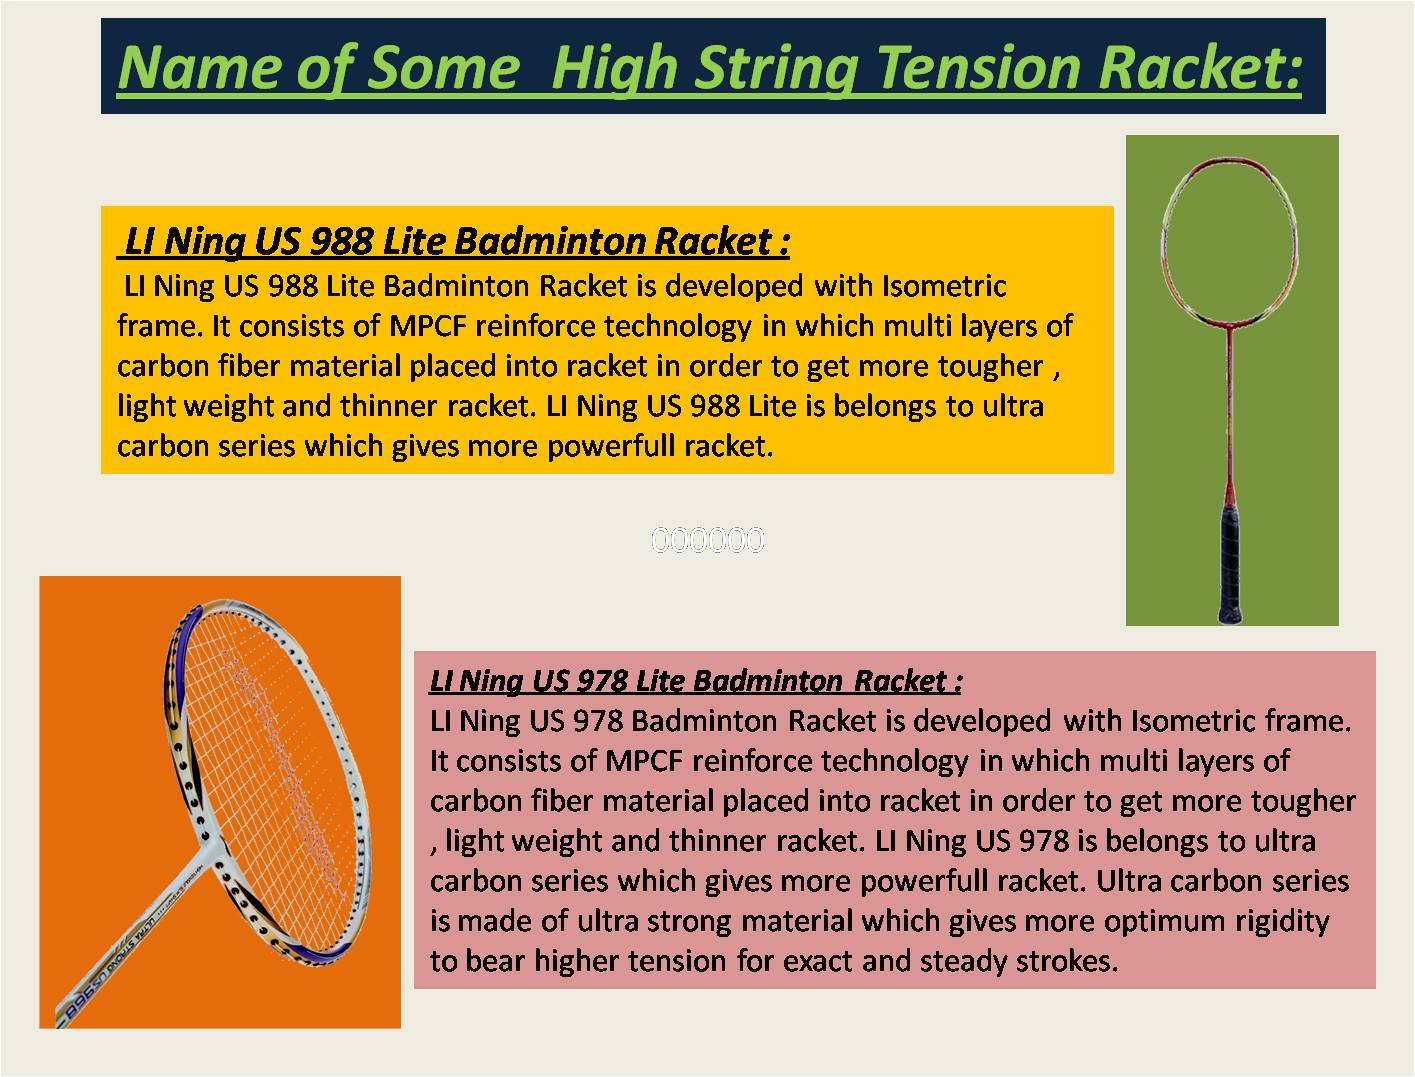 Name of Some High String Tension Badminton Racket